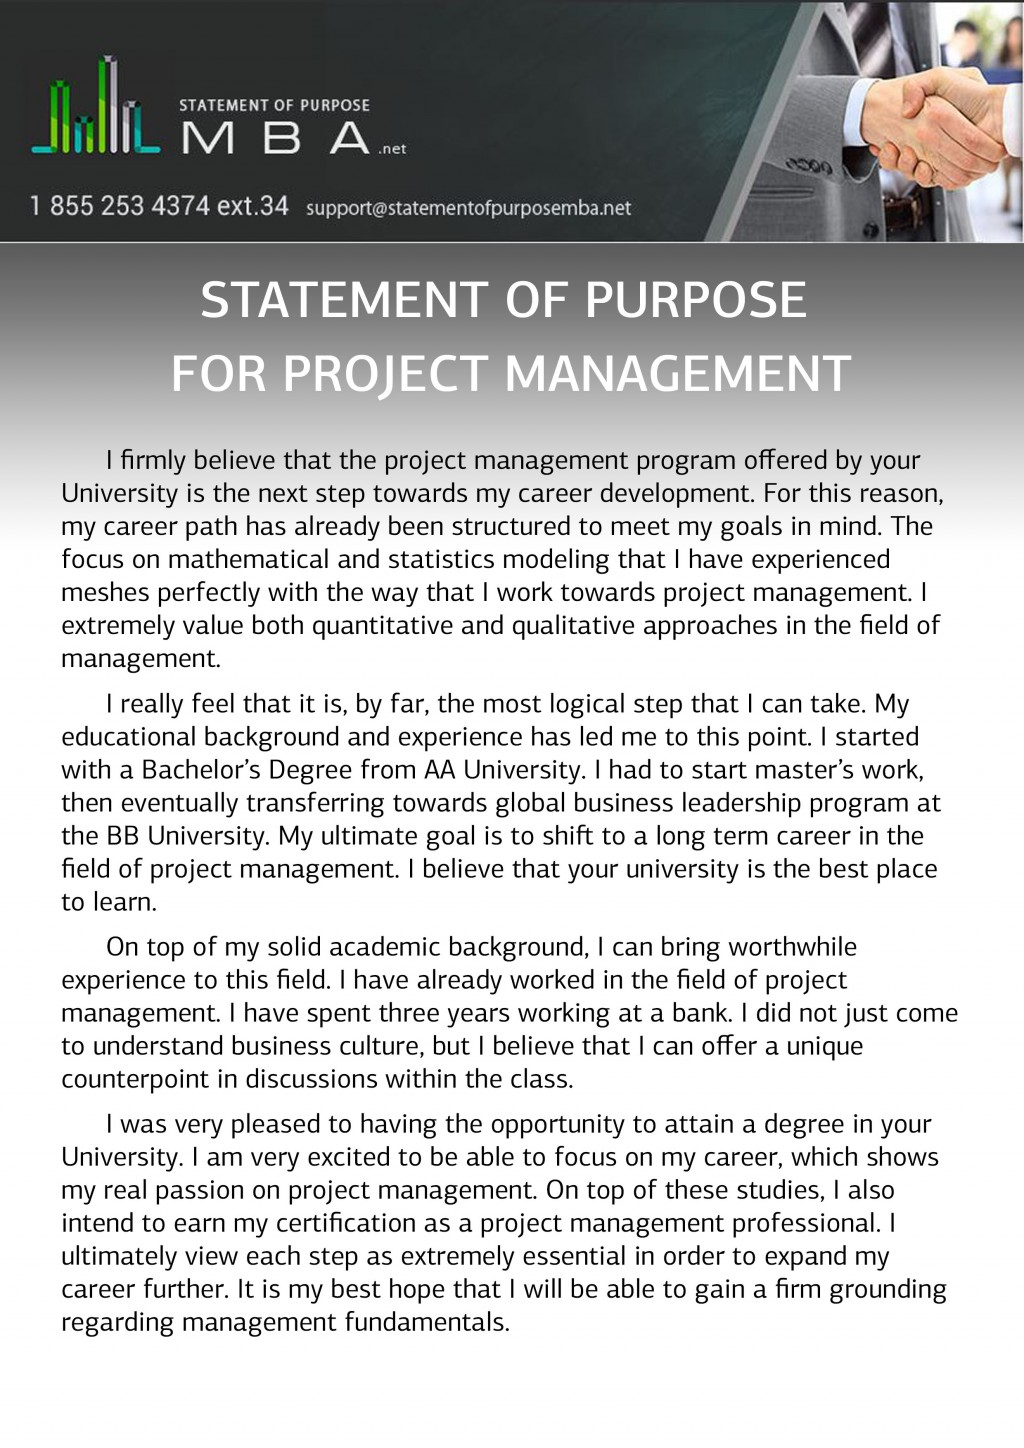 012 What Is The Purpose Of Research Paper Statement For Project Management Impressive A Conducting Critiquing Process Writing Large